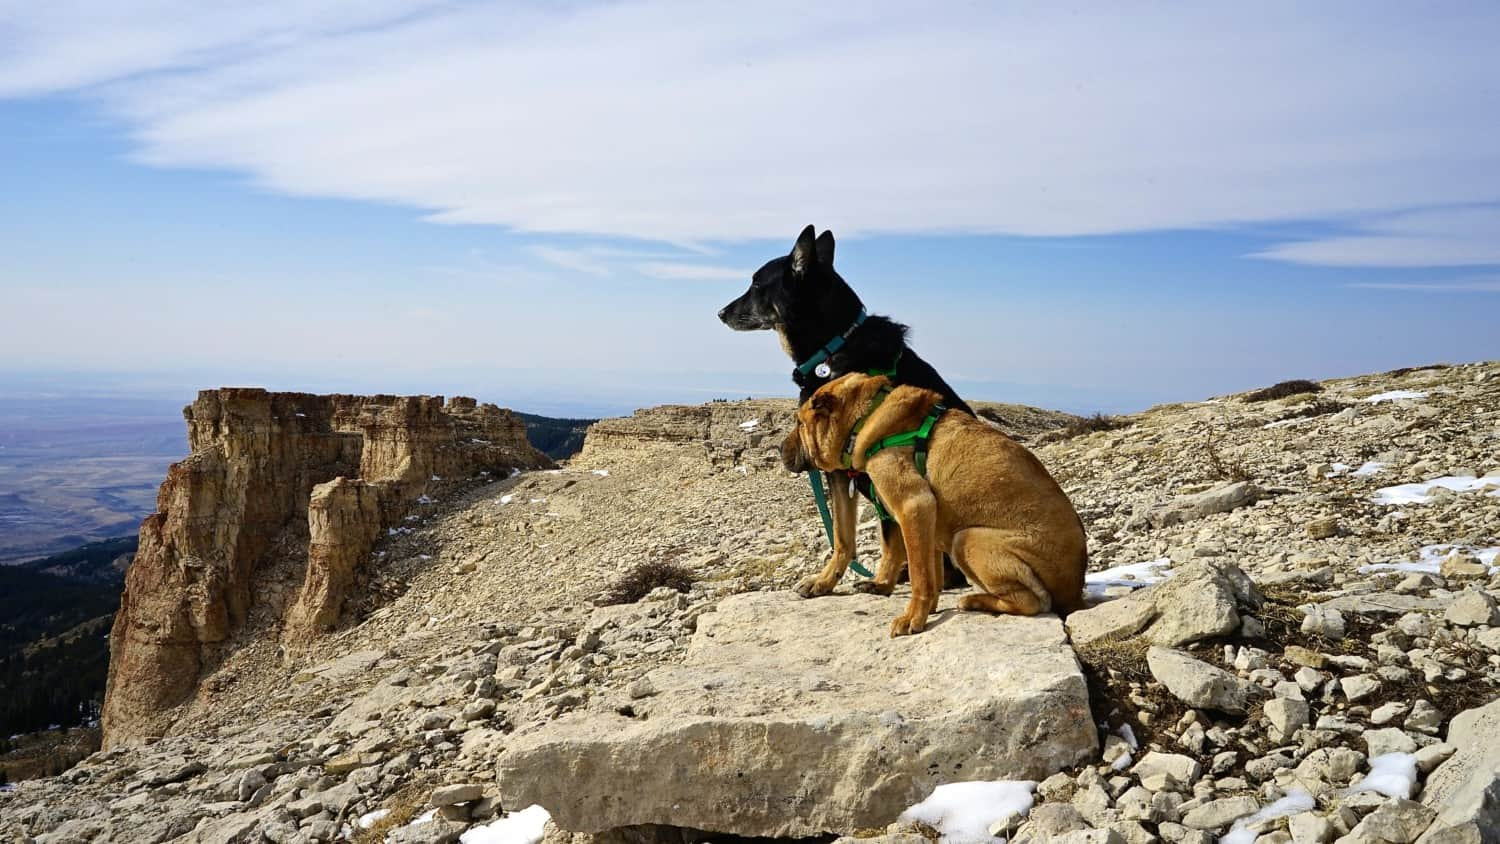 Wyoming's Top Pet Friendly Attraction: Medicine Wheel | GoPetFriendly.com